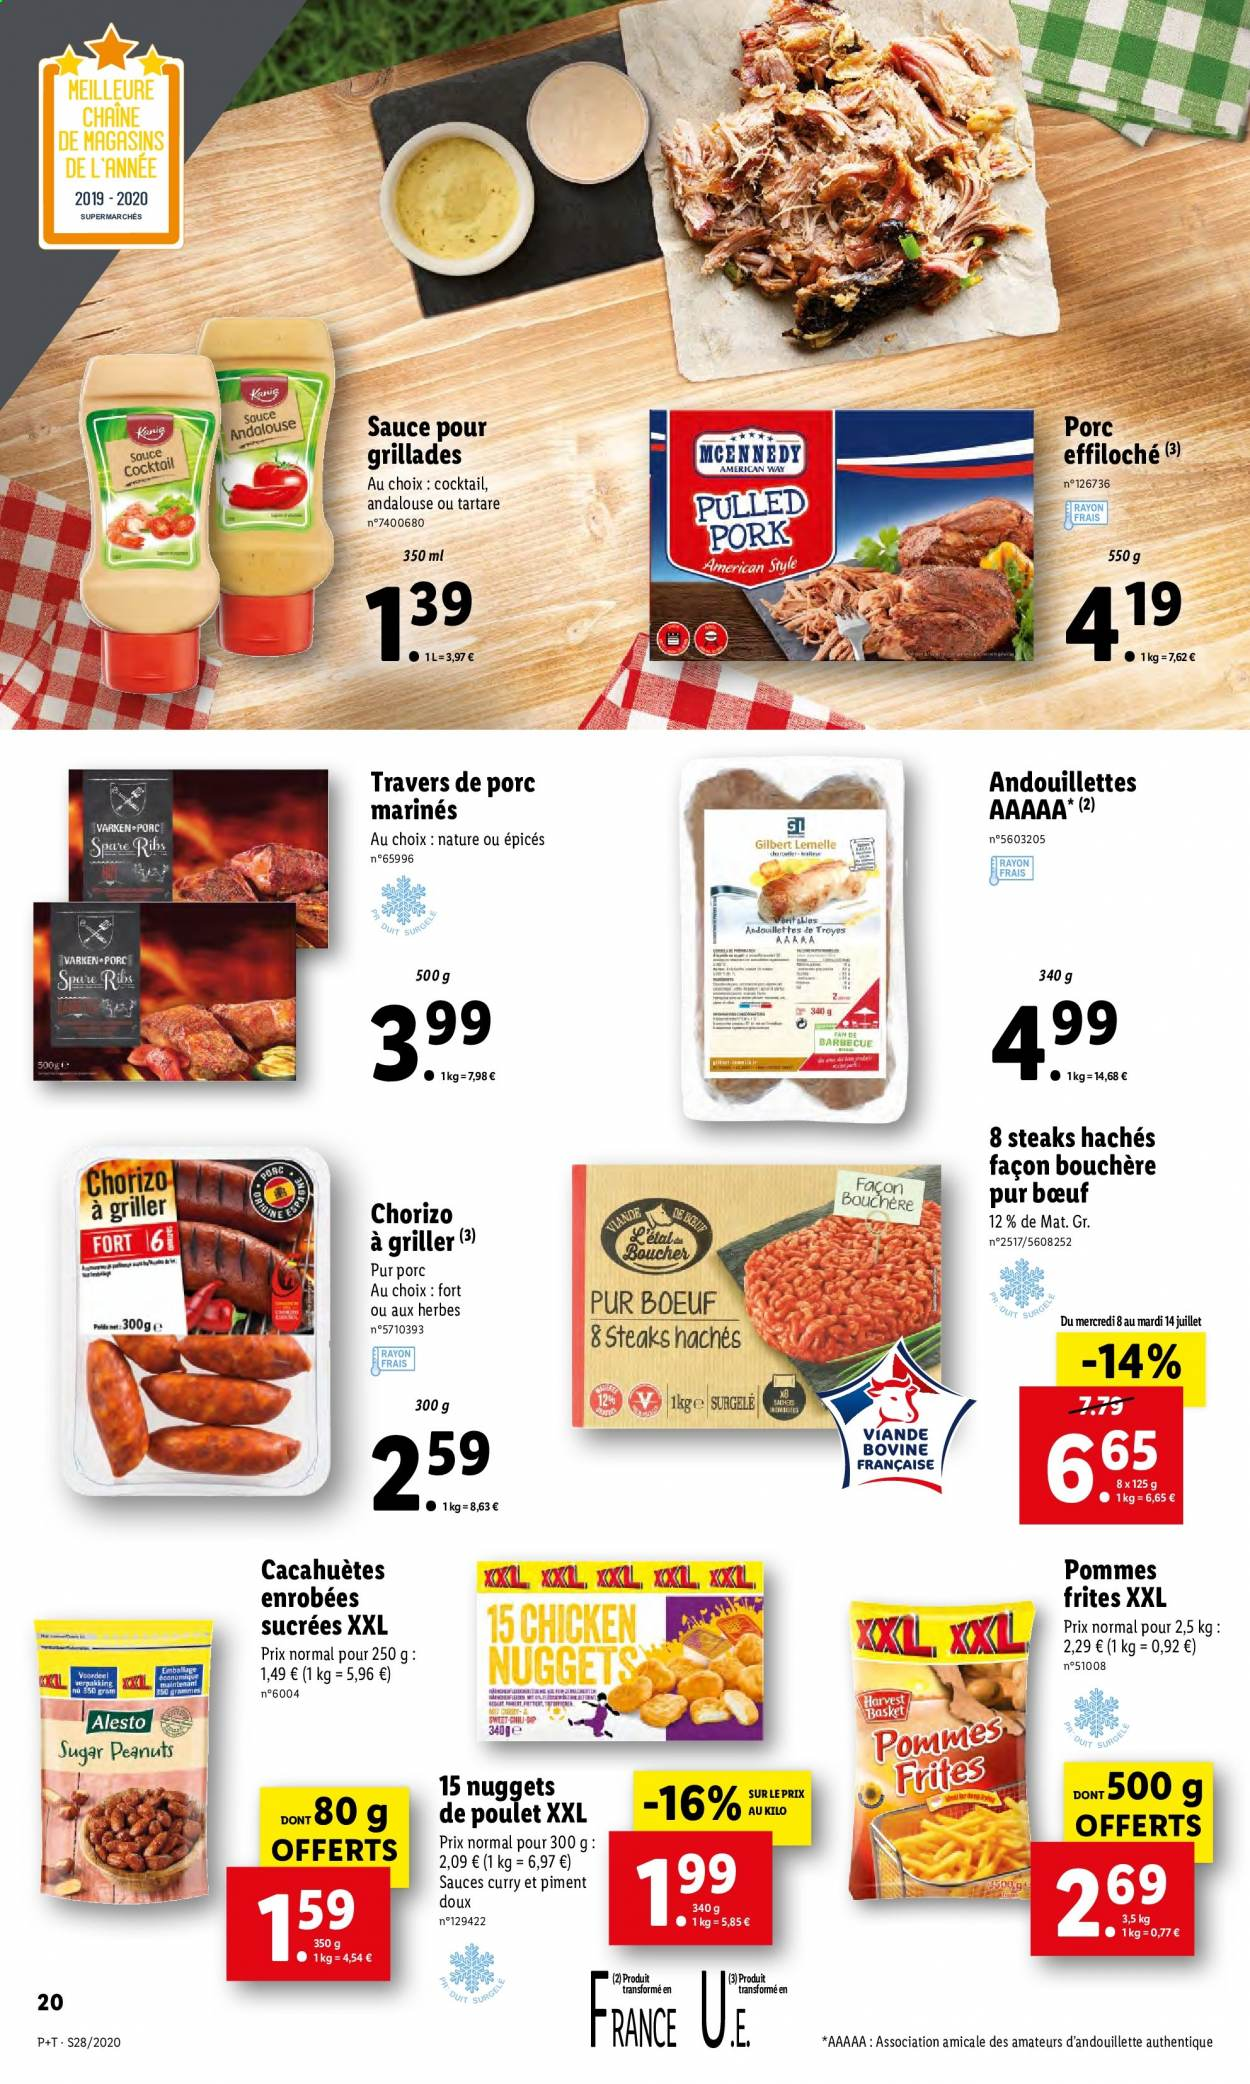 Catalogue Lidl - 08.07.2020 - 14.07.2020. Page 20.